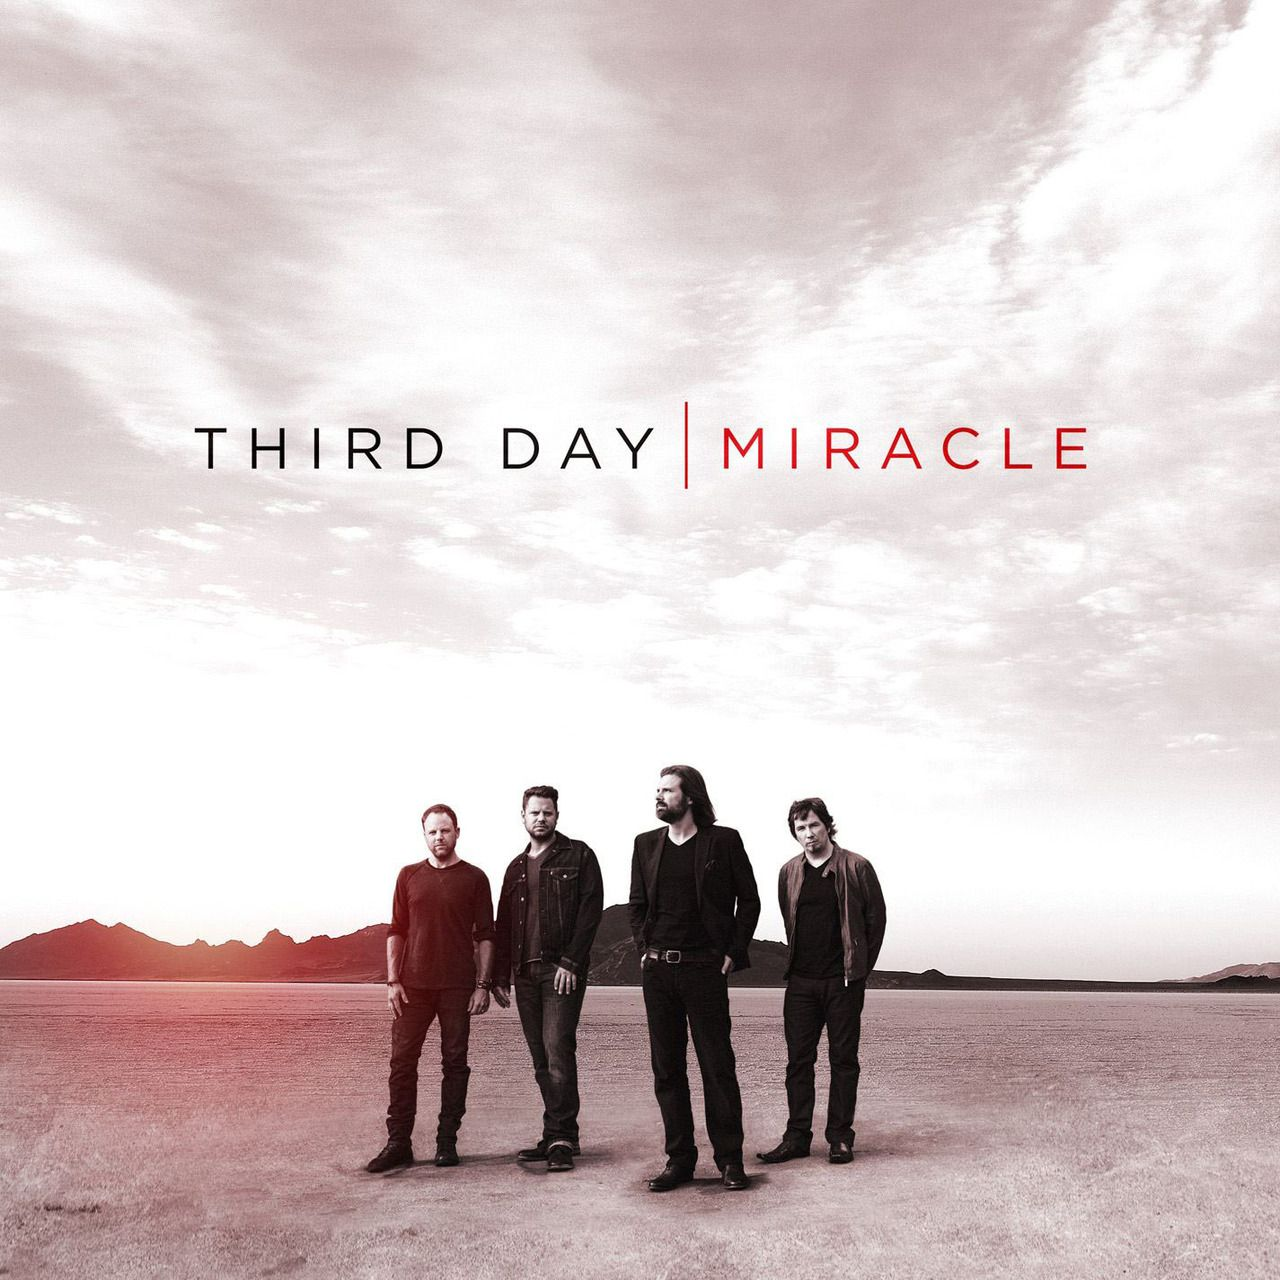 I need a miracle song download